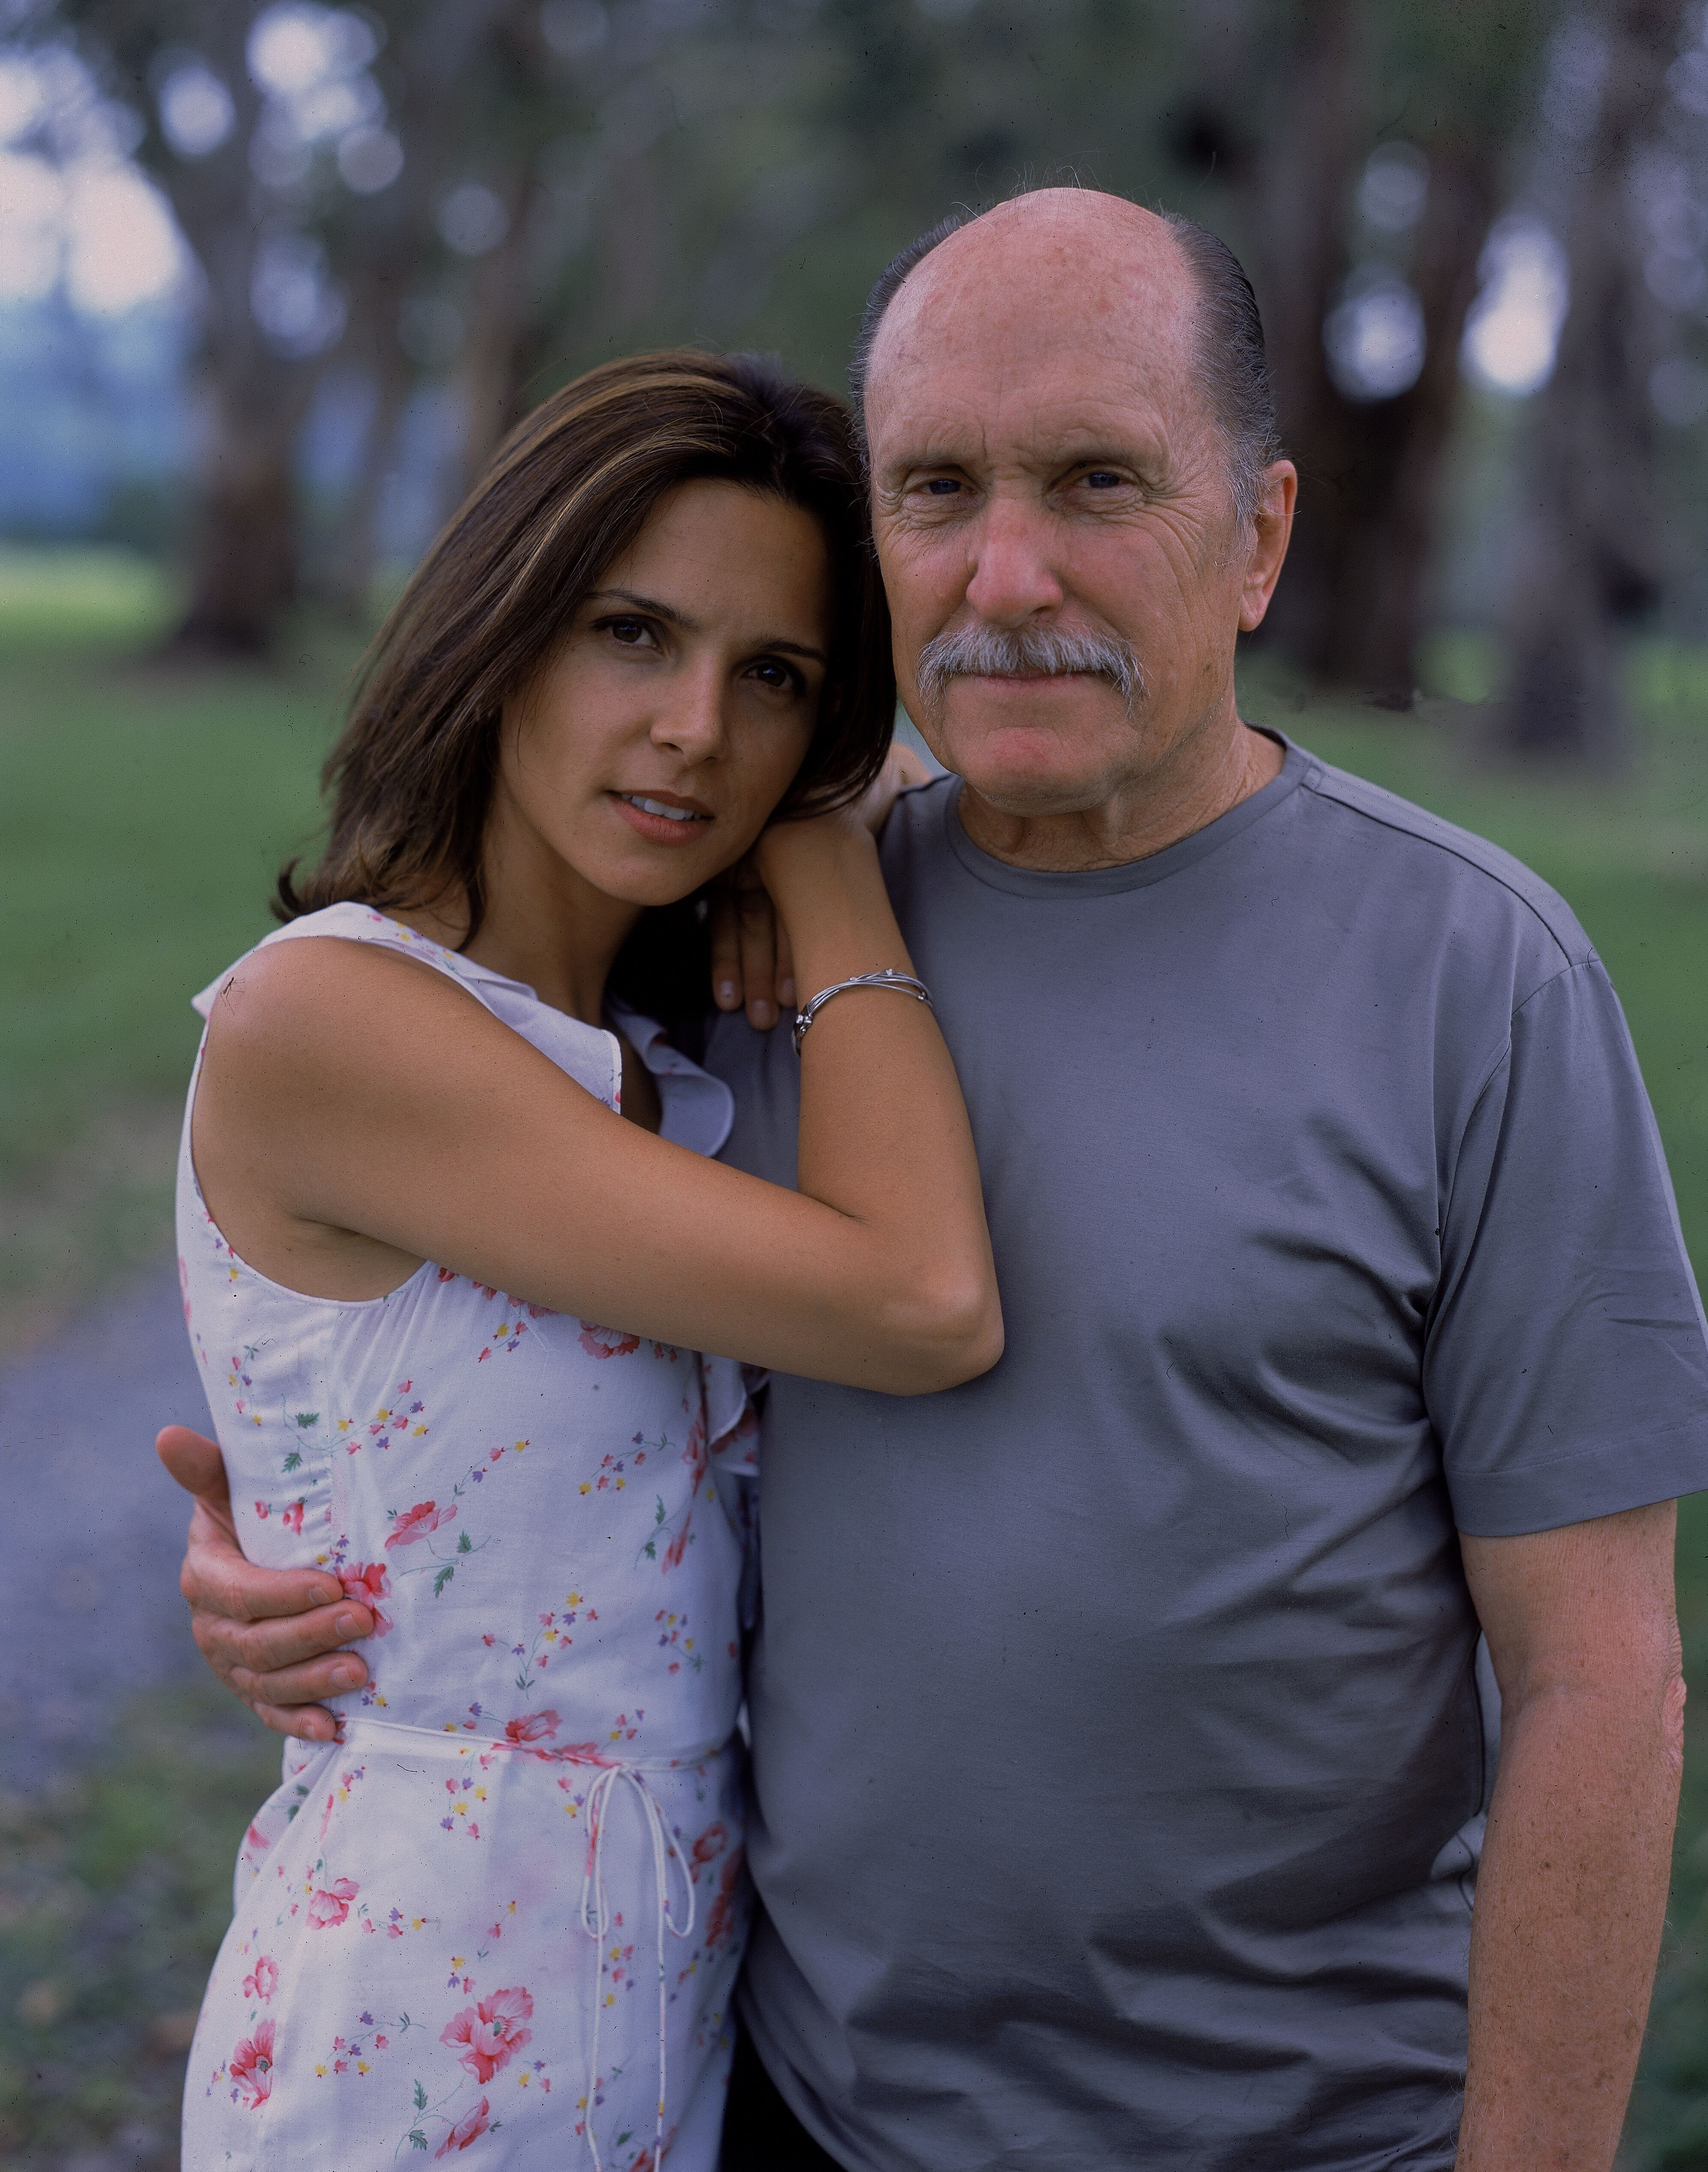 Robert Duvall and Luciana Pedraza in Argentina, 2003. | Source: Getty Images